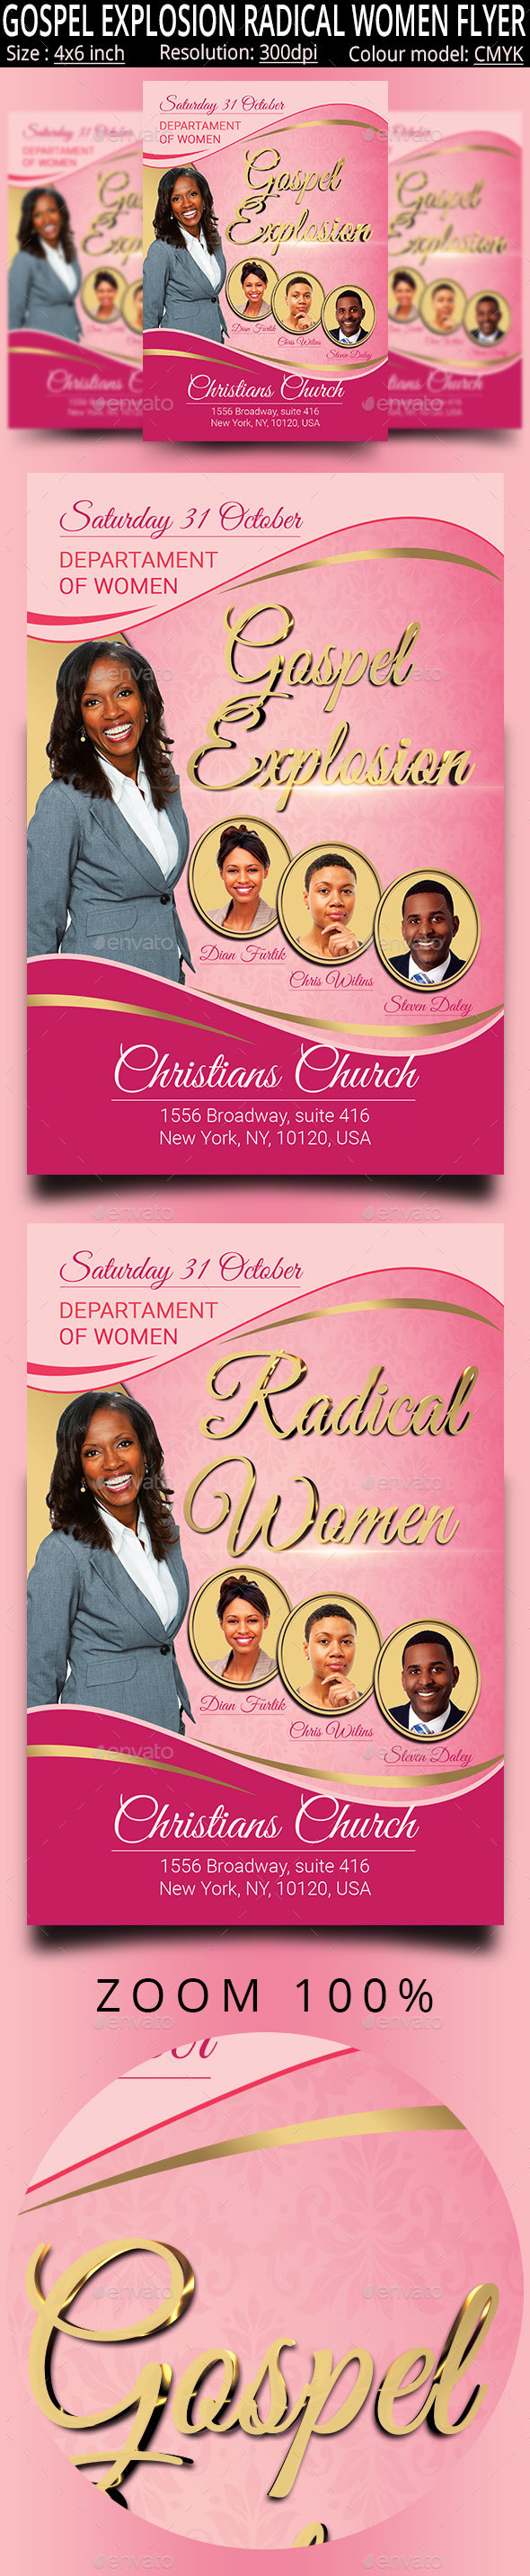 Gospel Explosion Radical Women Church Flyer - Church Flyers